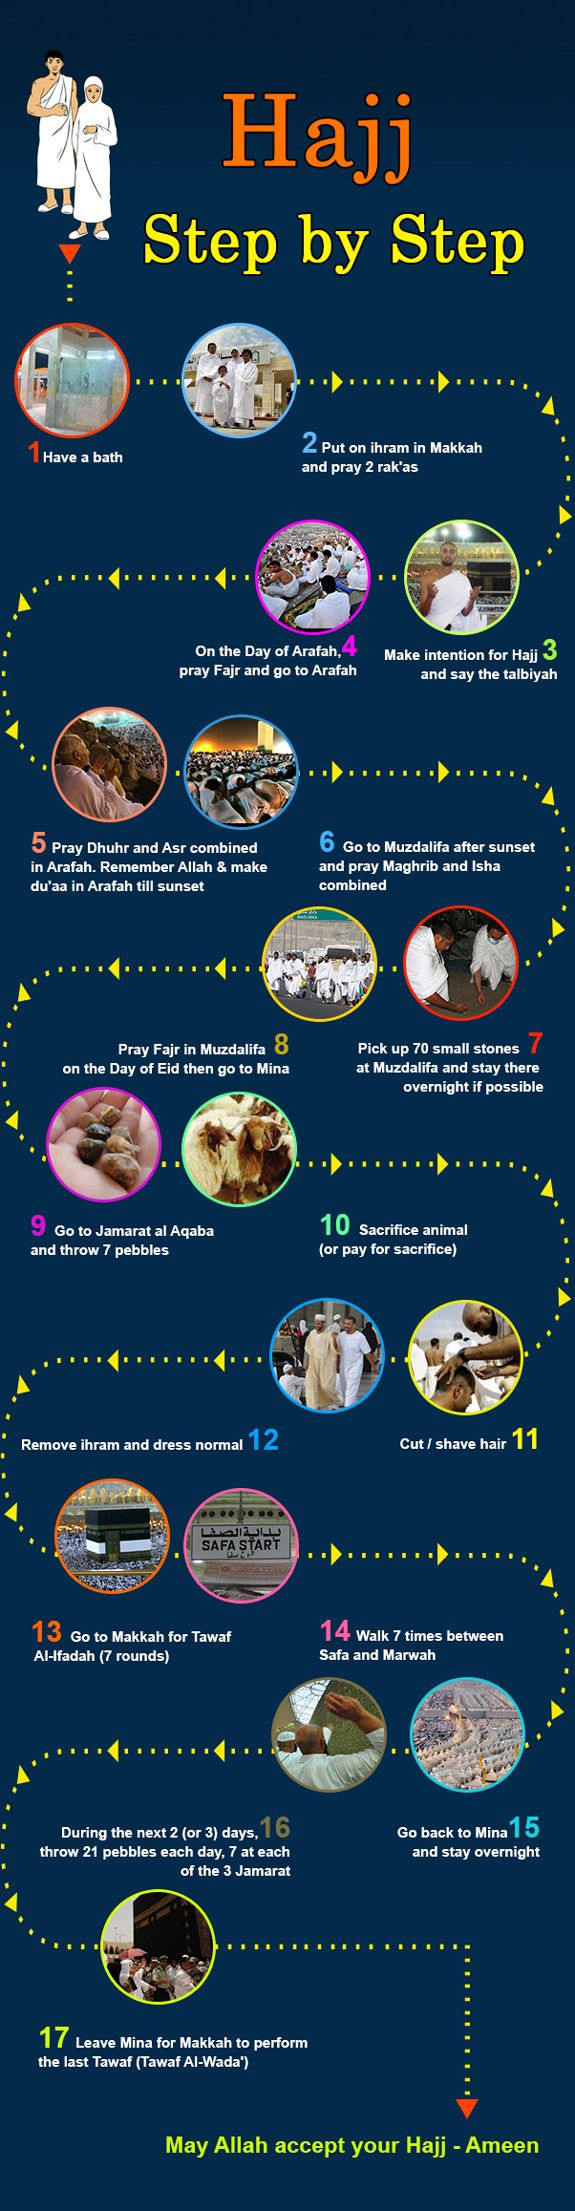 Hajj Step by Step (Infographic) - Reading Islam - Infographics - OnIslam.net. Septembre 2016 : bon pélerinage à tous les musulmans qui sont en train de le faire !